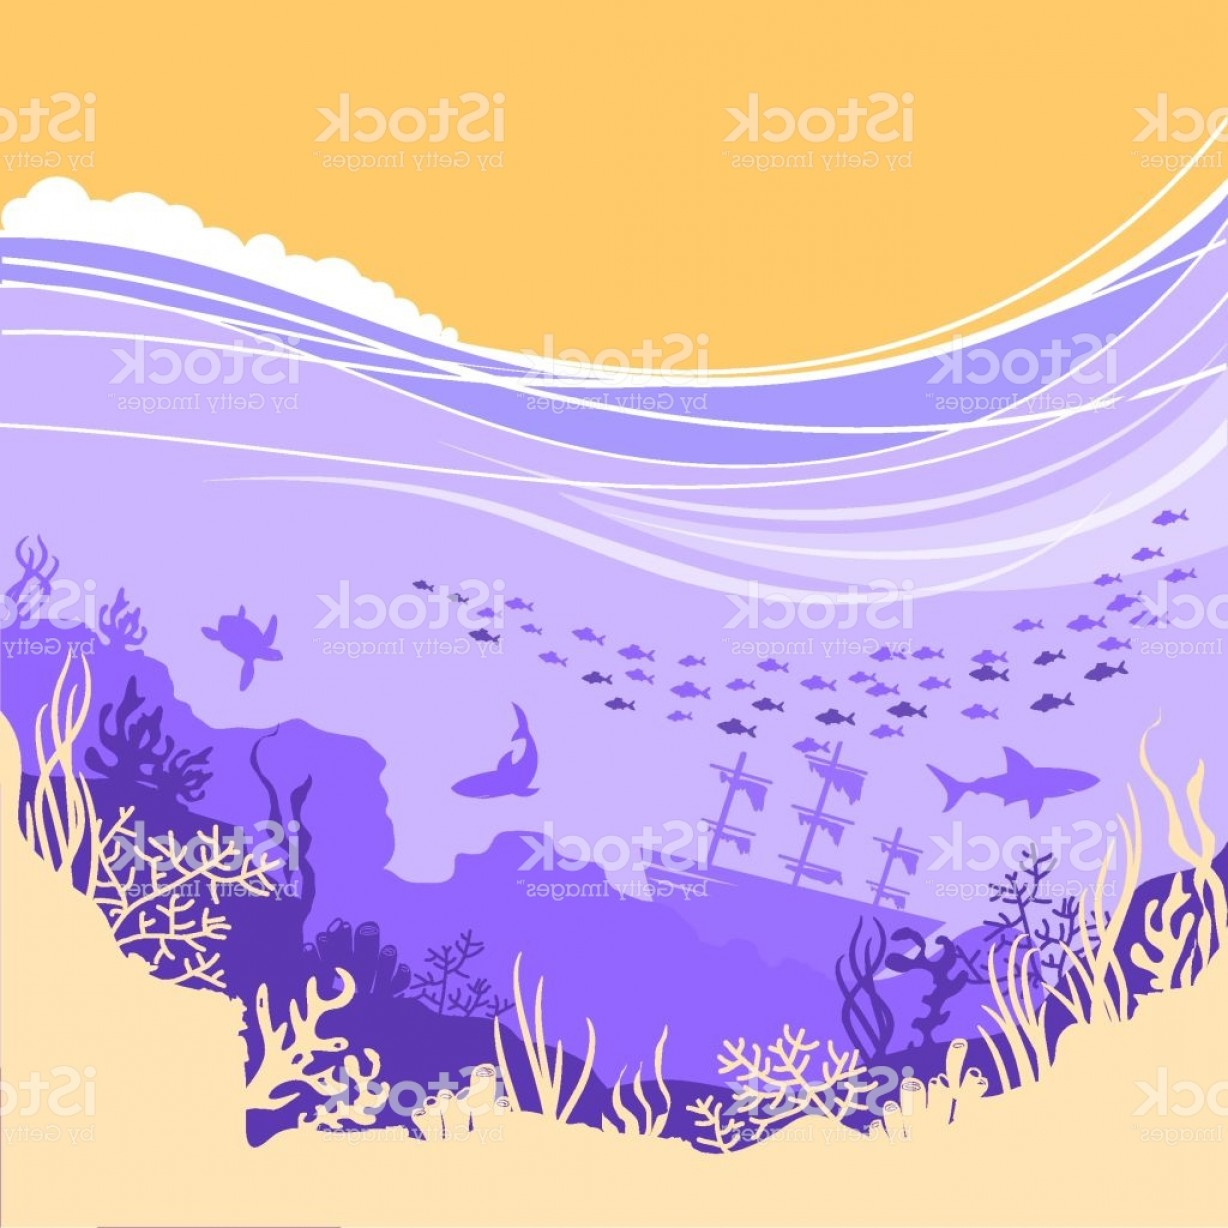 Underwater Sea Vector Art: Underwater Sea Background For Text Or Design Gm